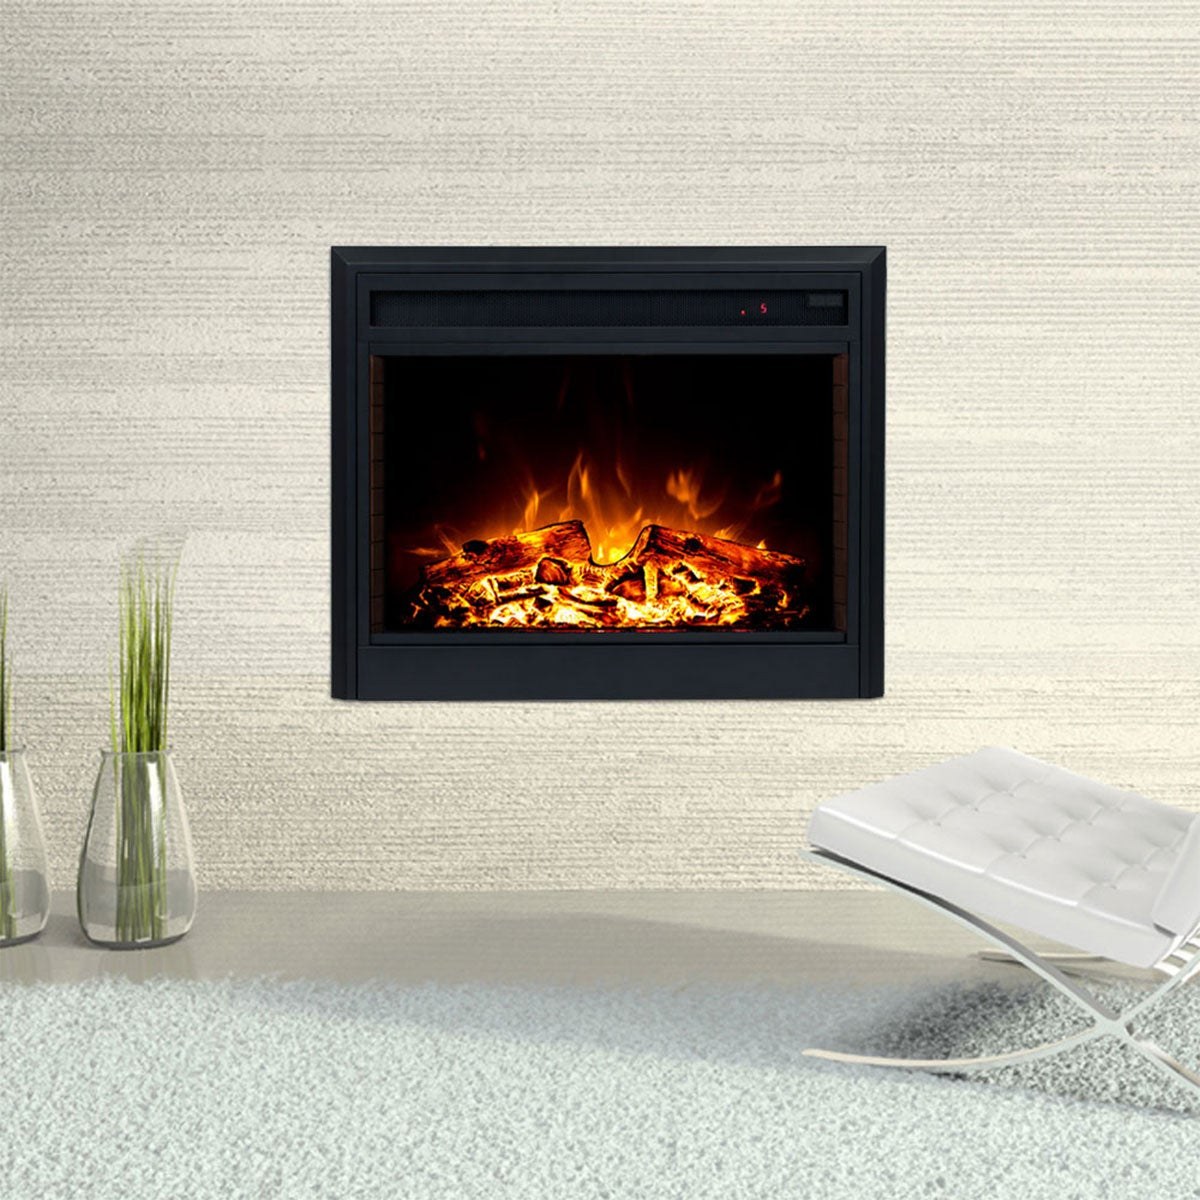 Moonlight 2000W 30 inch Electric Fireplace Insert | Buy ...